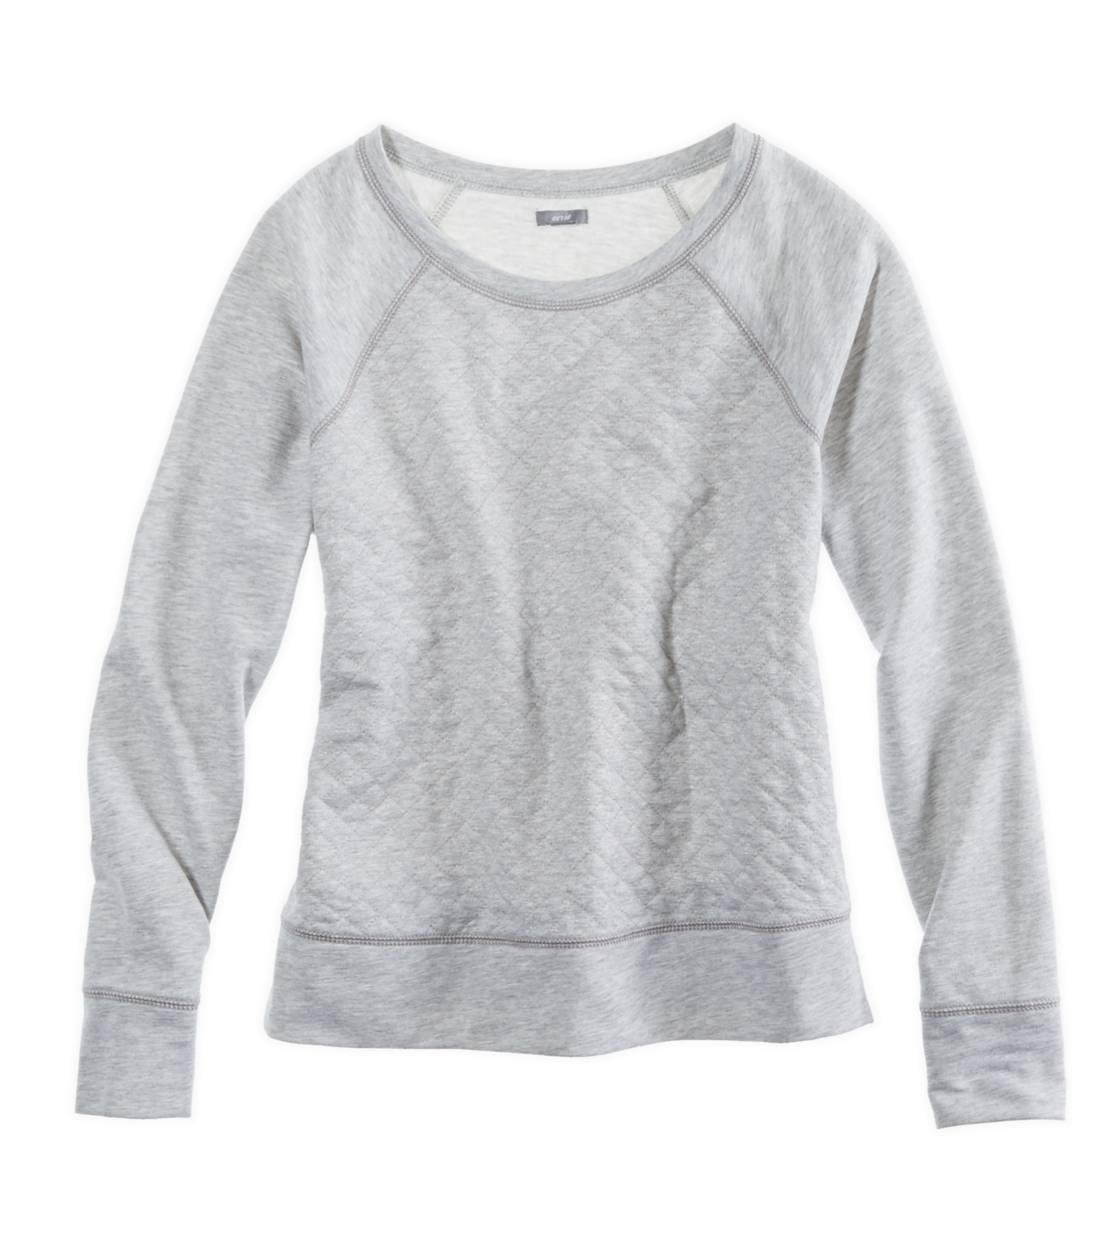 Medium Heather Grey Aerie Quilted Sparkle Sweatshirt